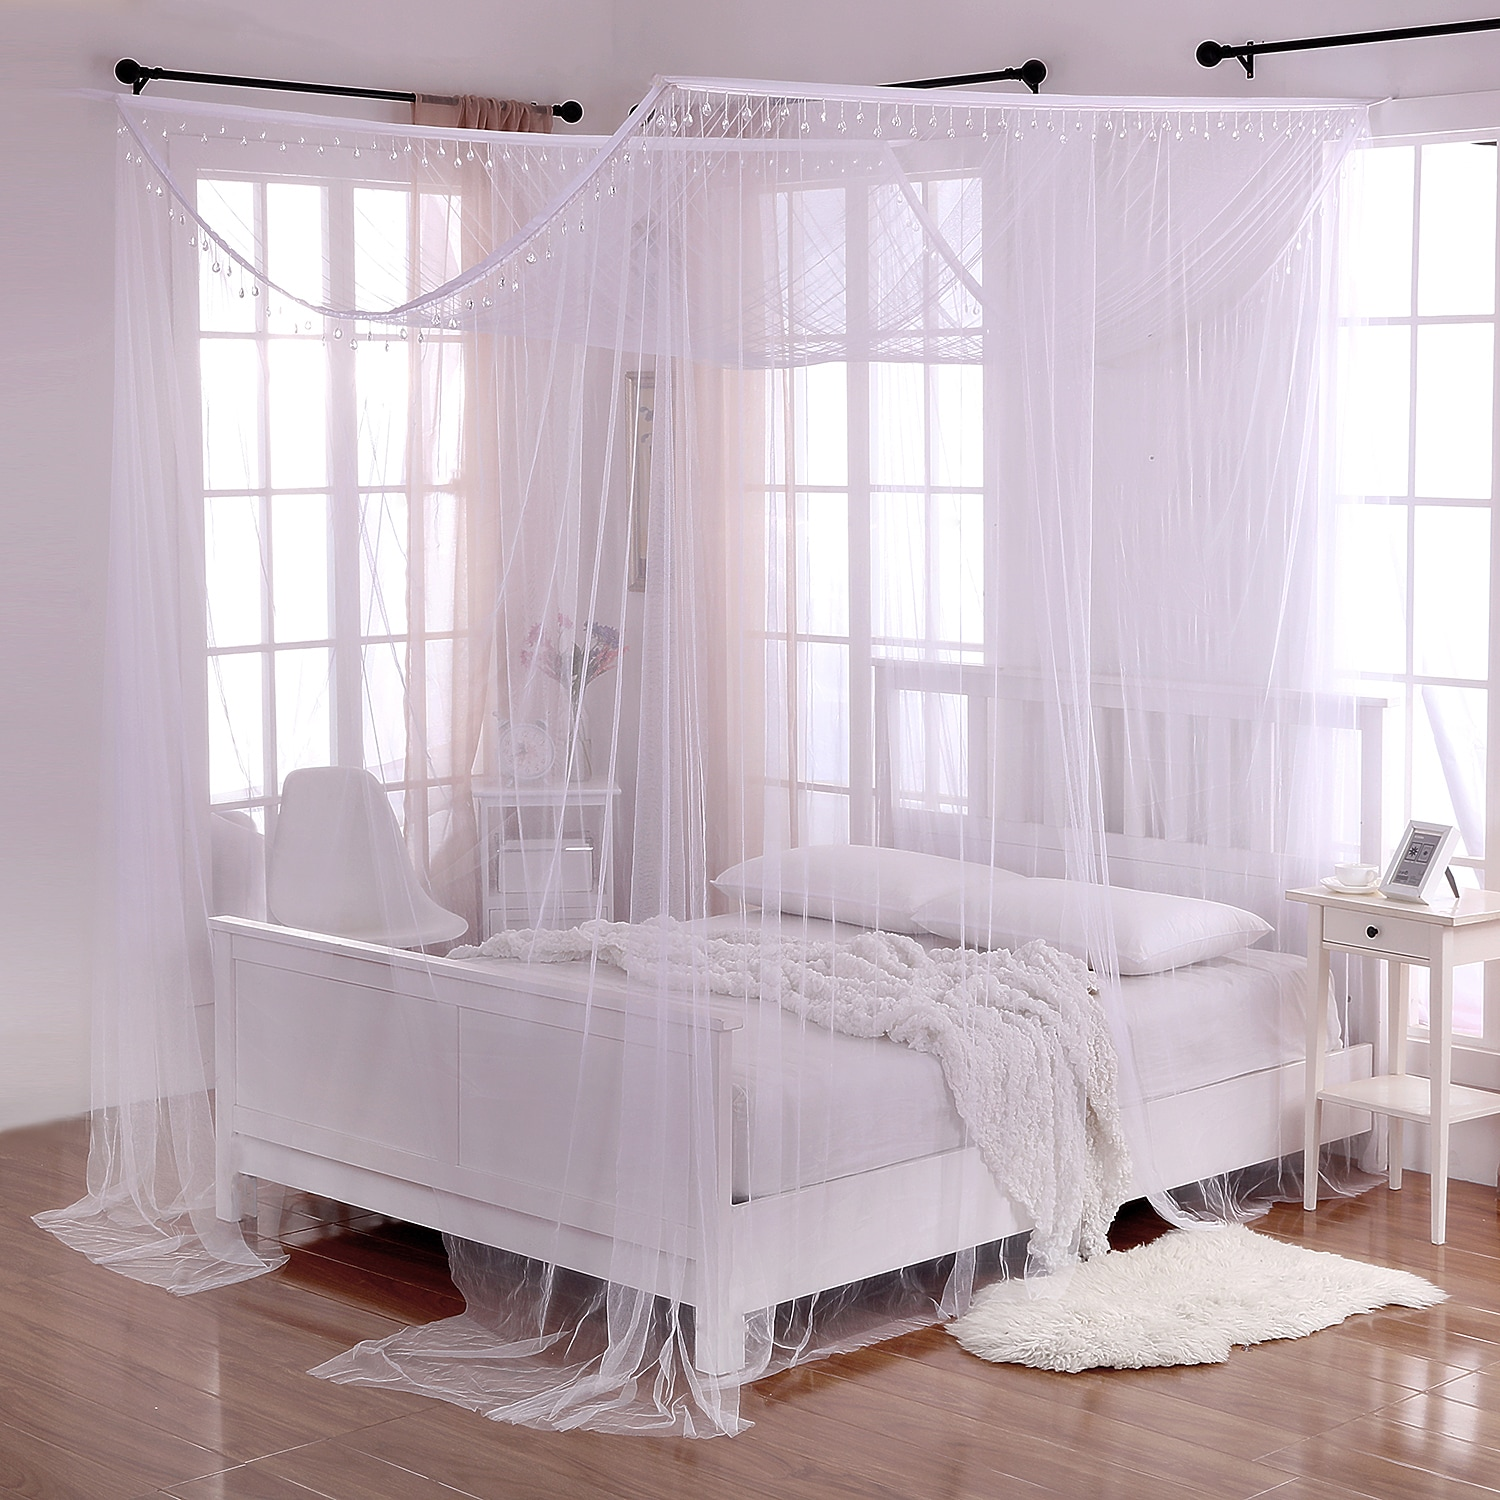 Epoch Hometex, inc. Palace Crystal Accent White Polyester 4-Post Bed Canopy